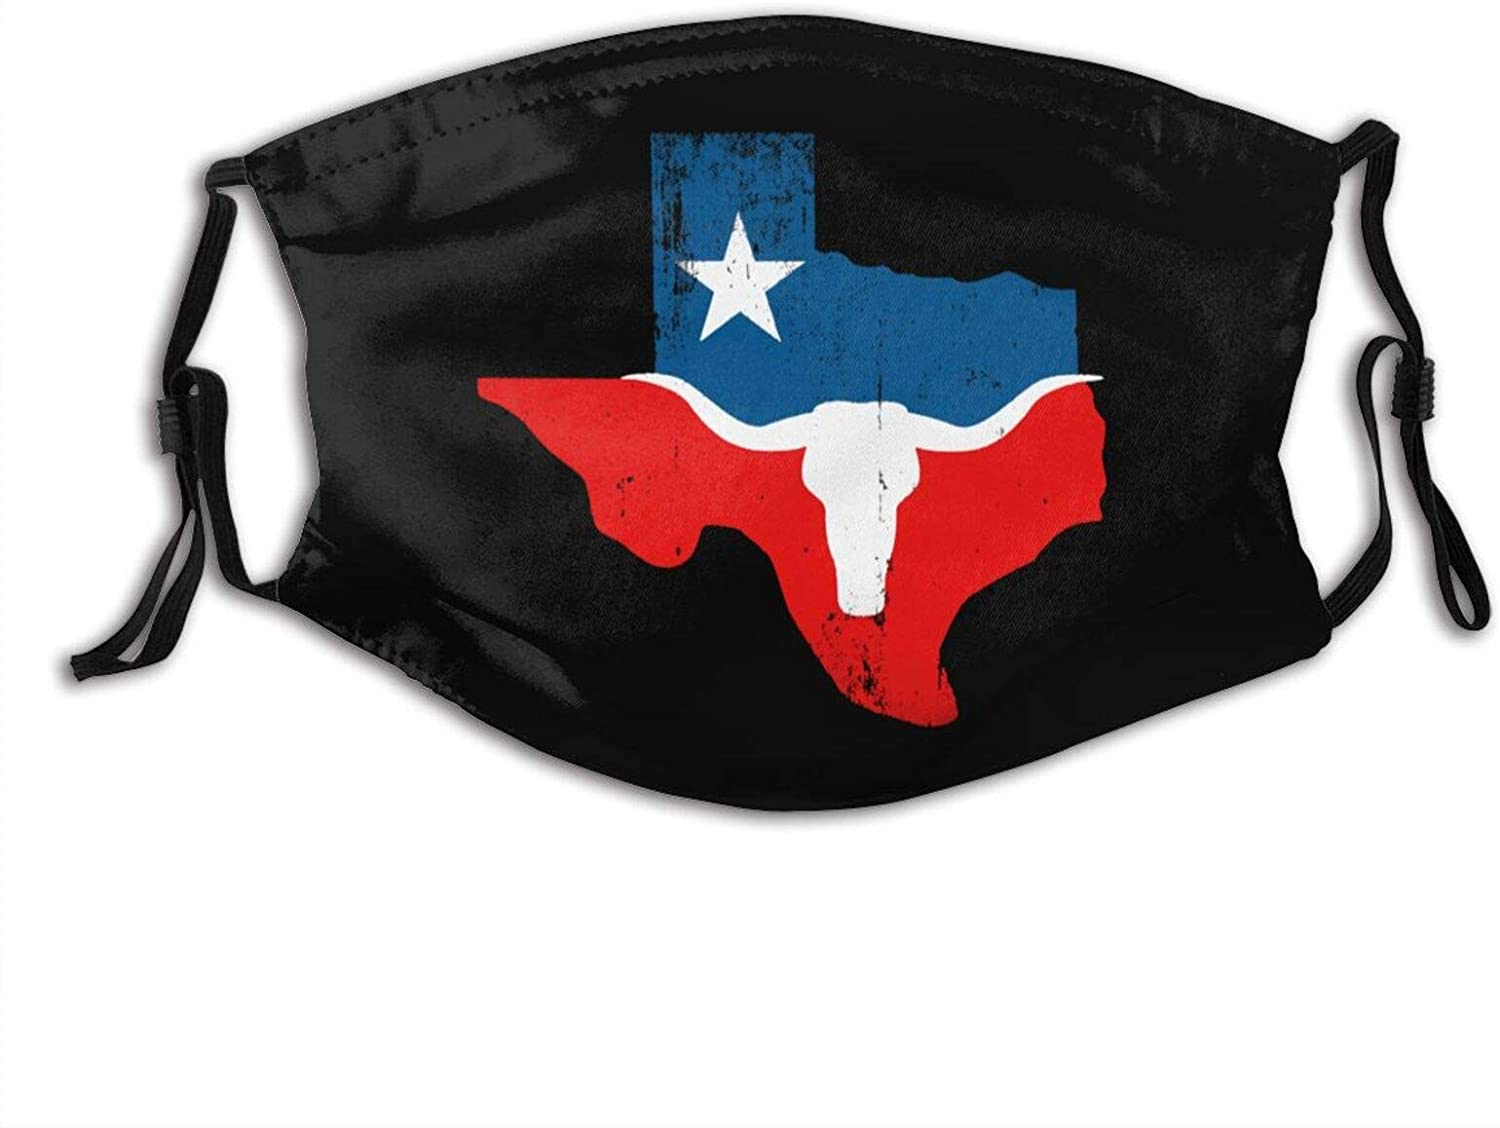 Texas Pride Western Texas Star Outdoor Mask, Protective 5-Layer Activated Carbon Filter, Adult Male and Female Headscarves